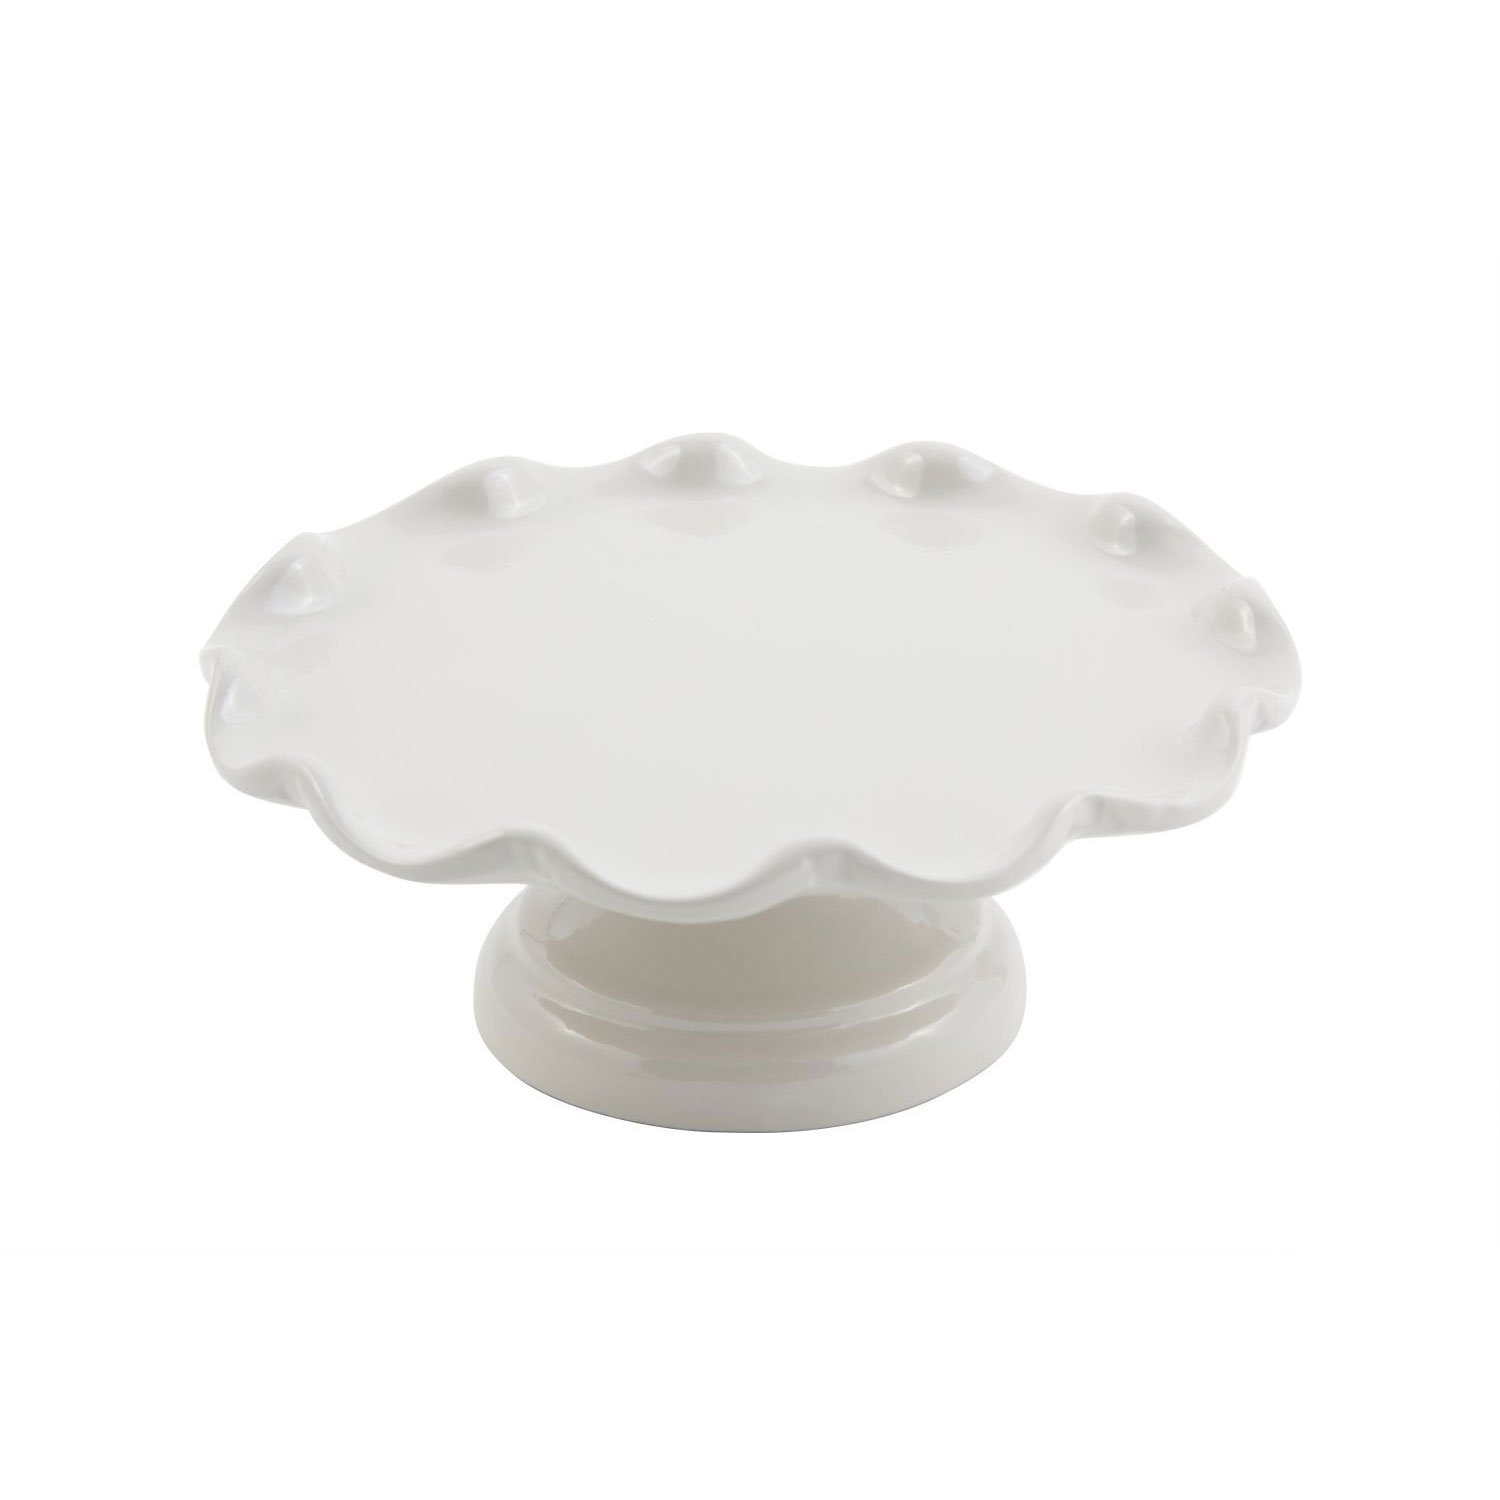 13 1/2 dia. x 4 inch Scalloped Cake Stand with Pedestal Sandstone White